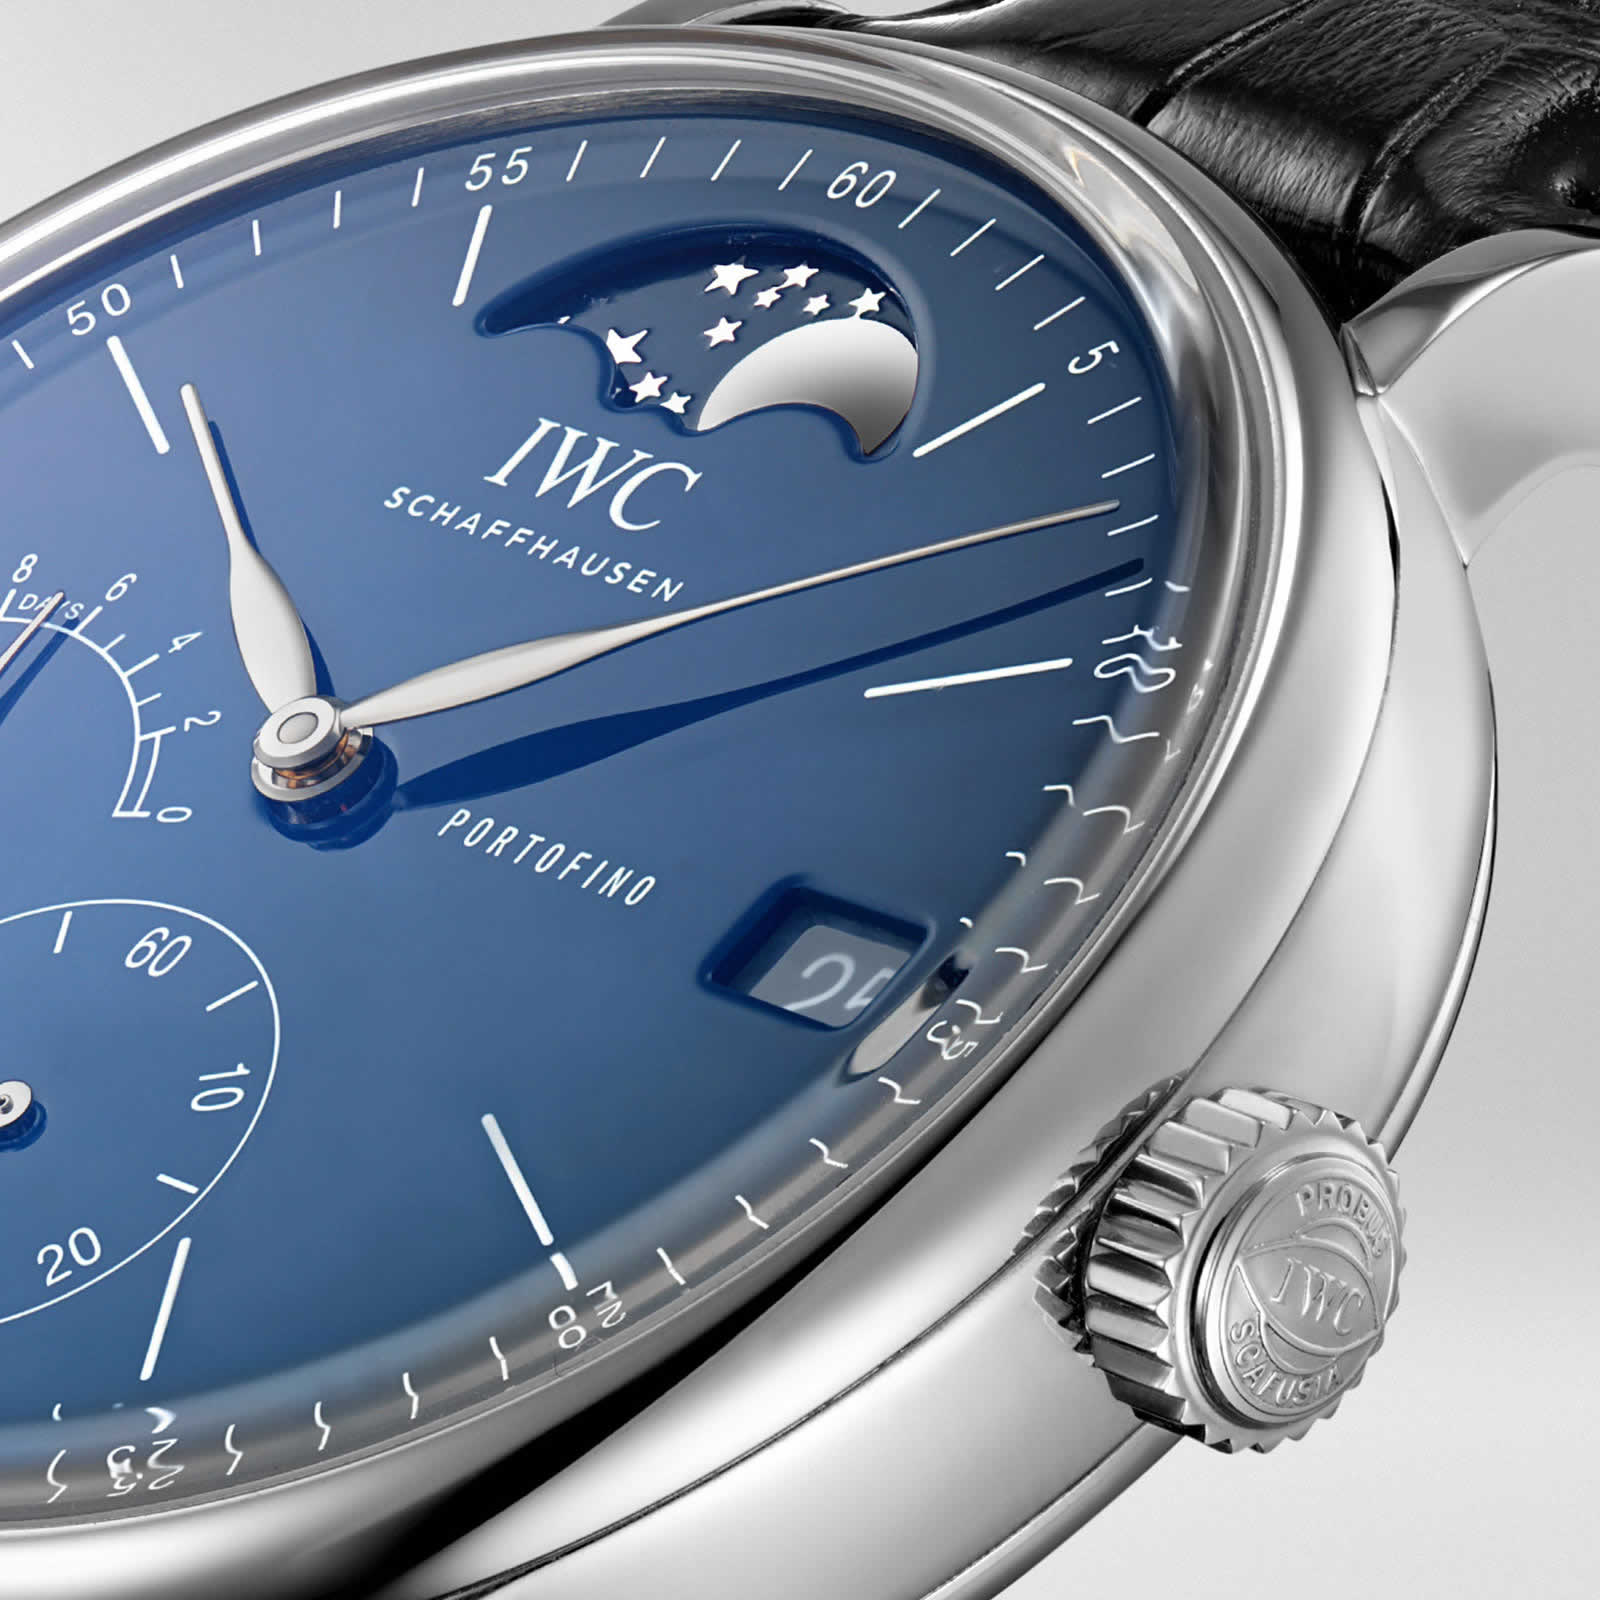 iwc-Portugieser-Hand-Wound-Eight-Days-Edition-150-Years-2-.jpg